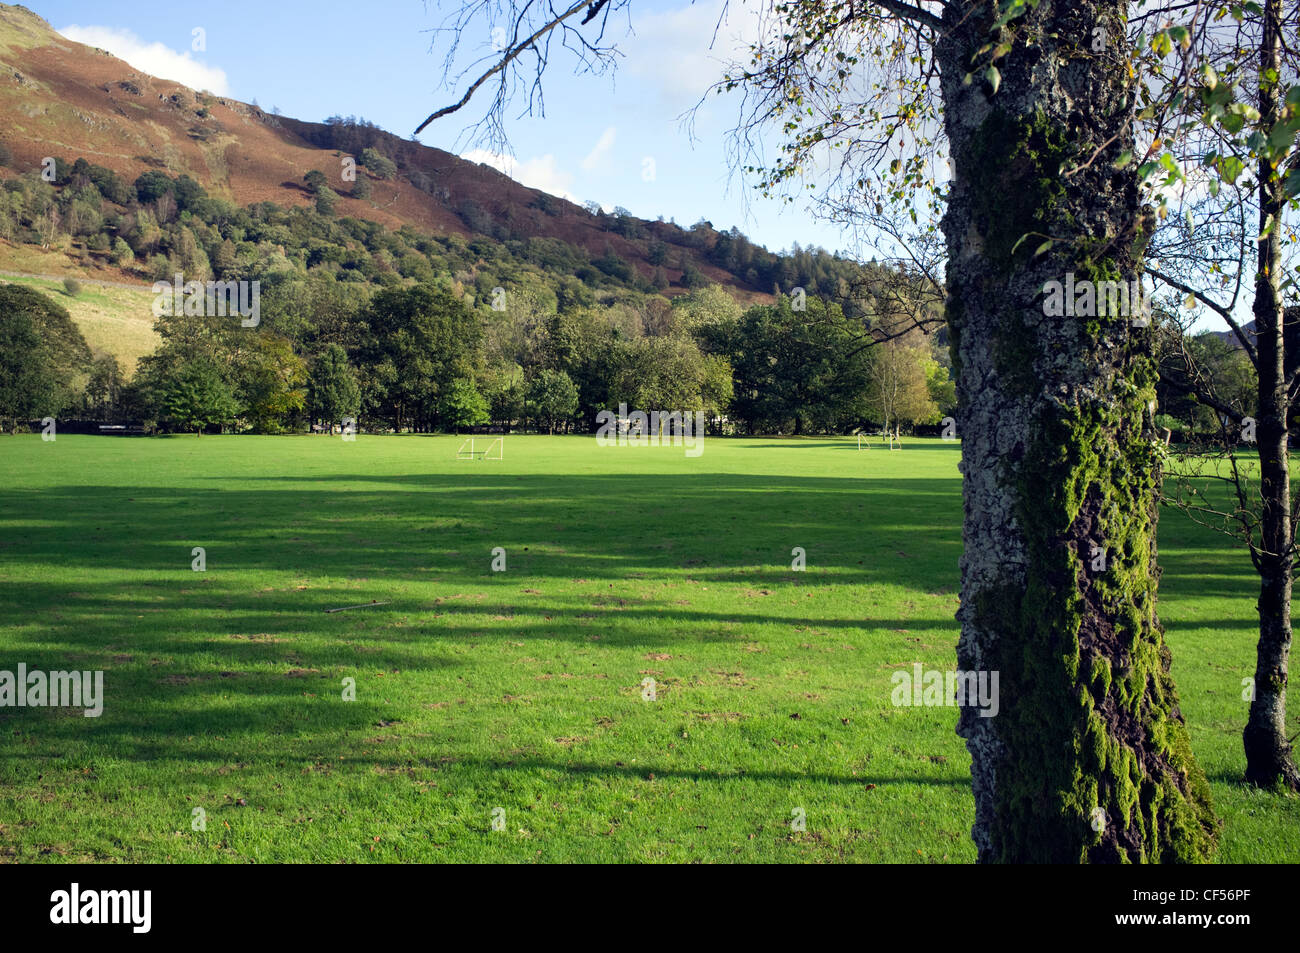 Broadgate Meadow Park in an idyllic Lakeland setting, Grasmere, Cumbria, England - Stock Image